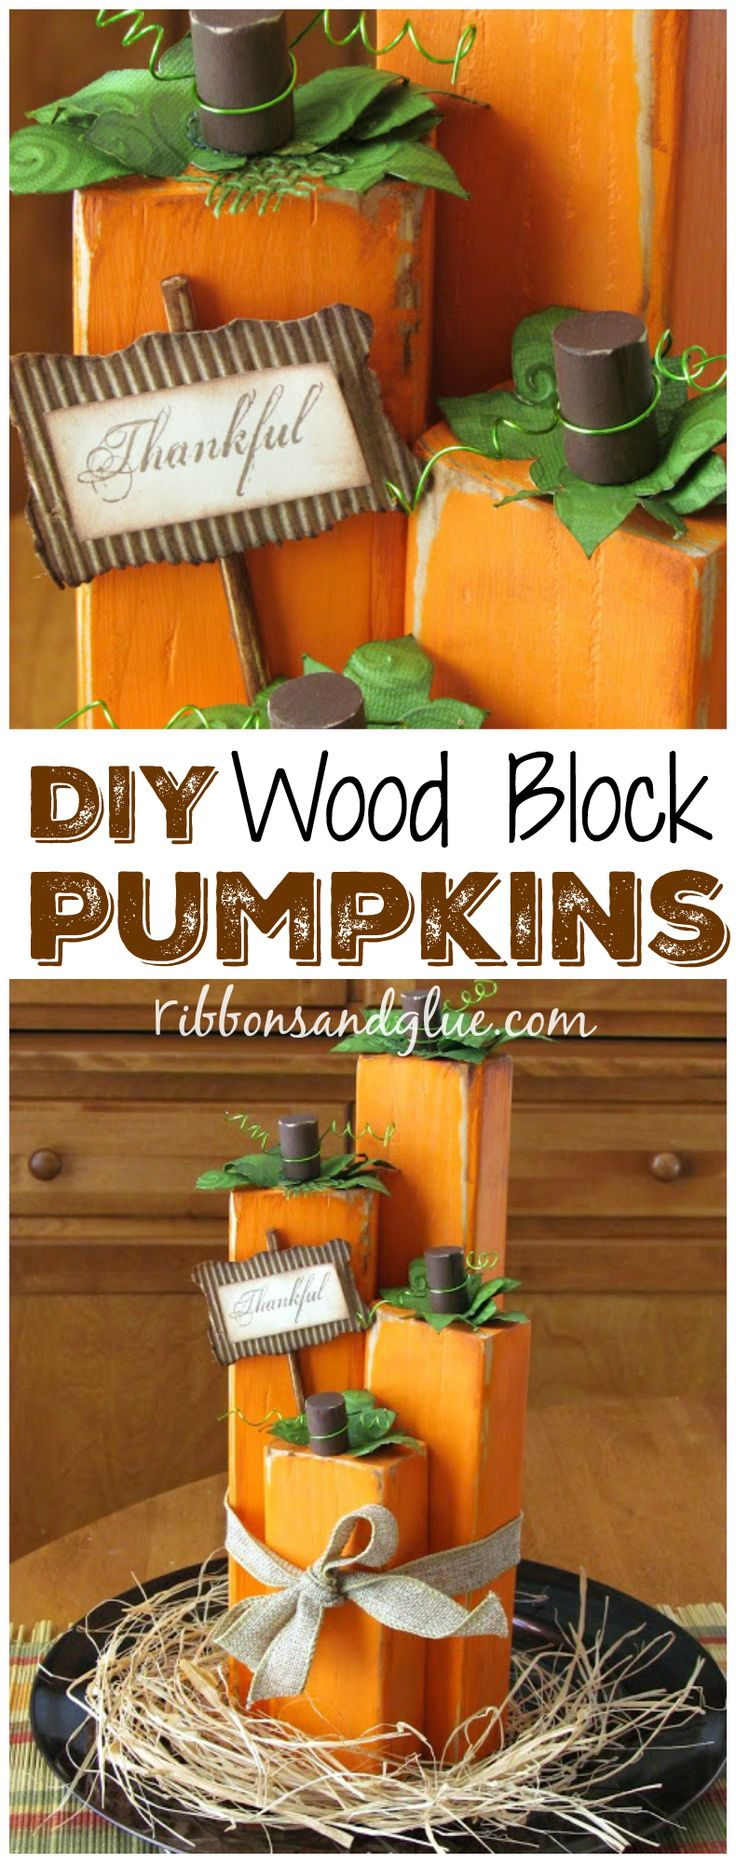 DIY Wood Block Pumpkins.  Create this simple Fall centerpiece idea by making…